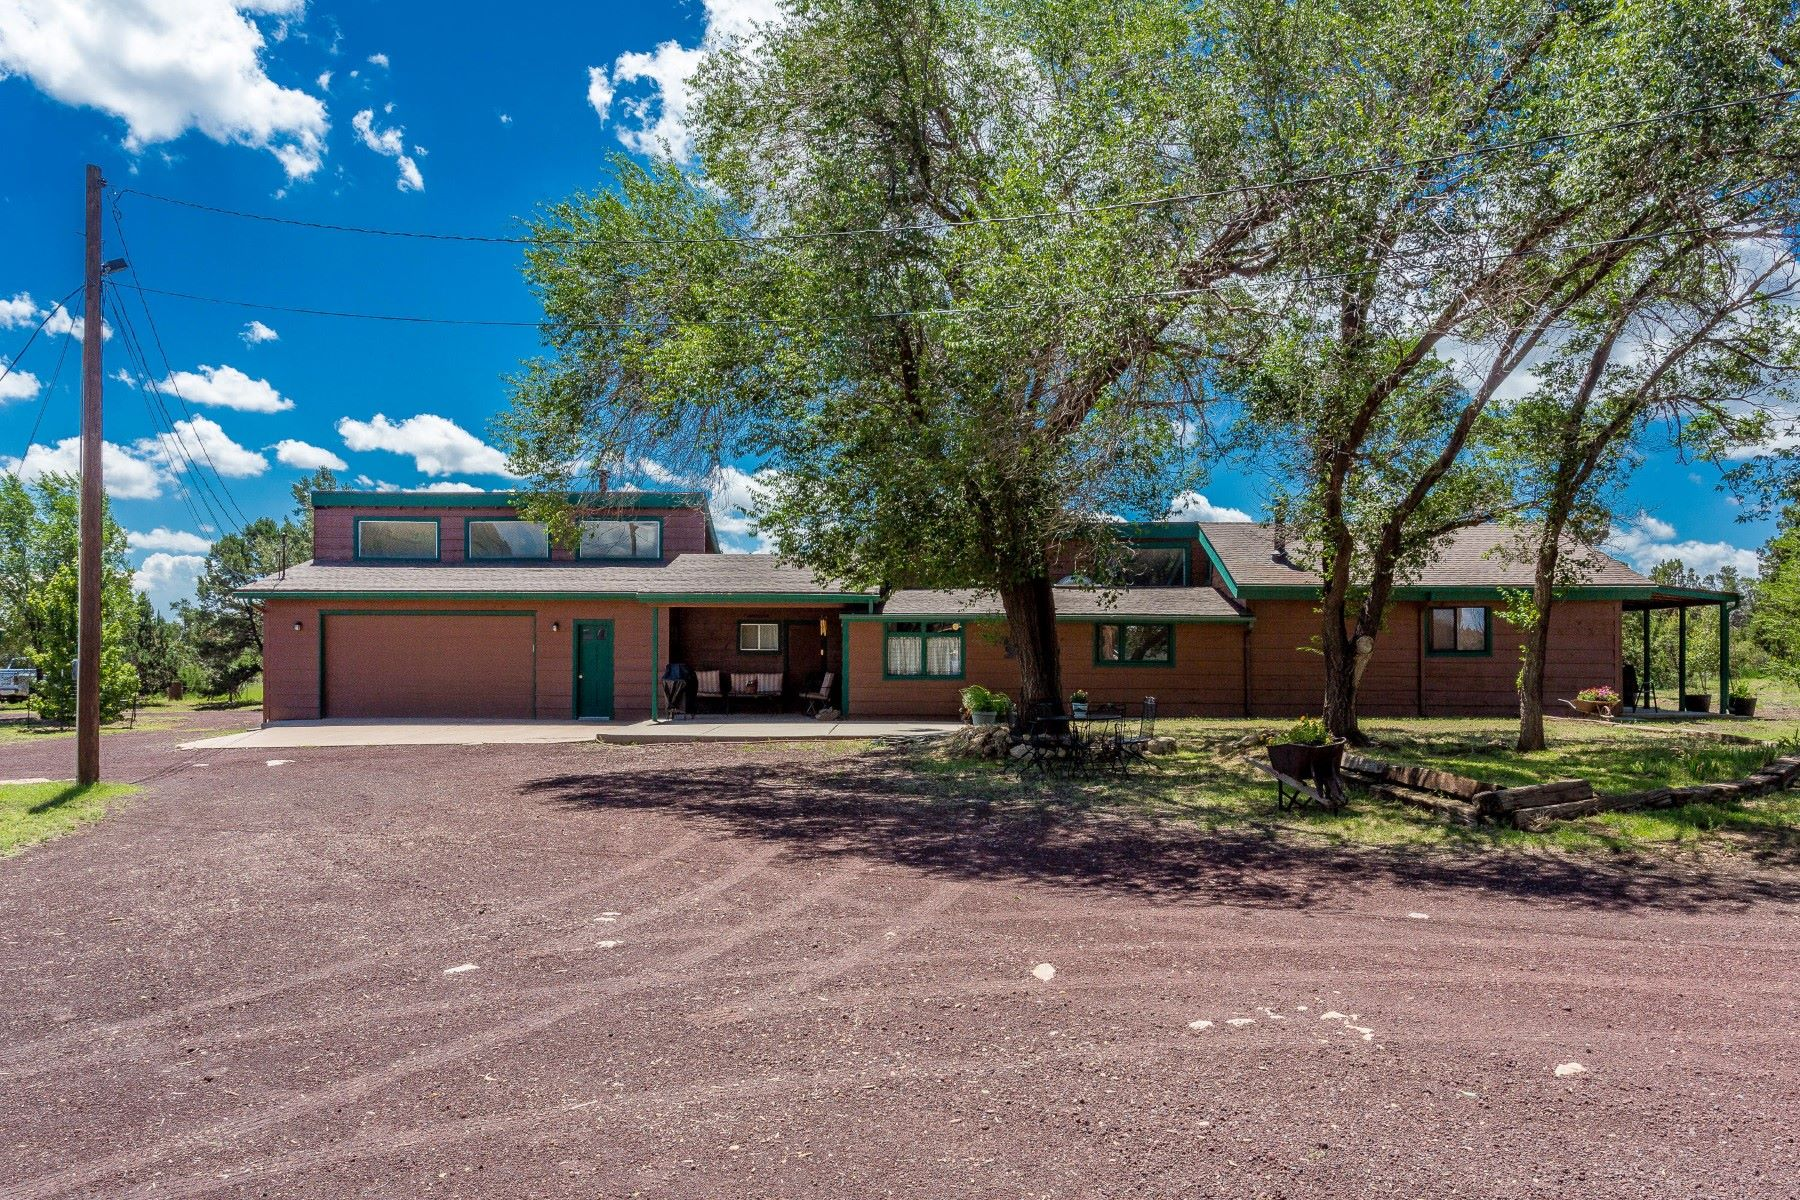 Single Family Home for Sale at Prime Location Horse Property 7015 Hutton Ranch Rd, Flagstaff, Arizona, 86004 United States